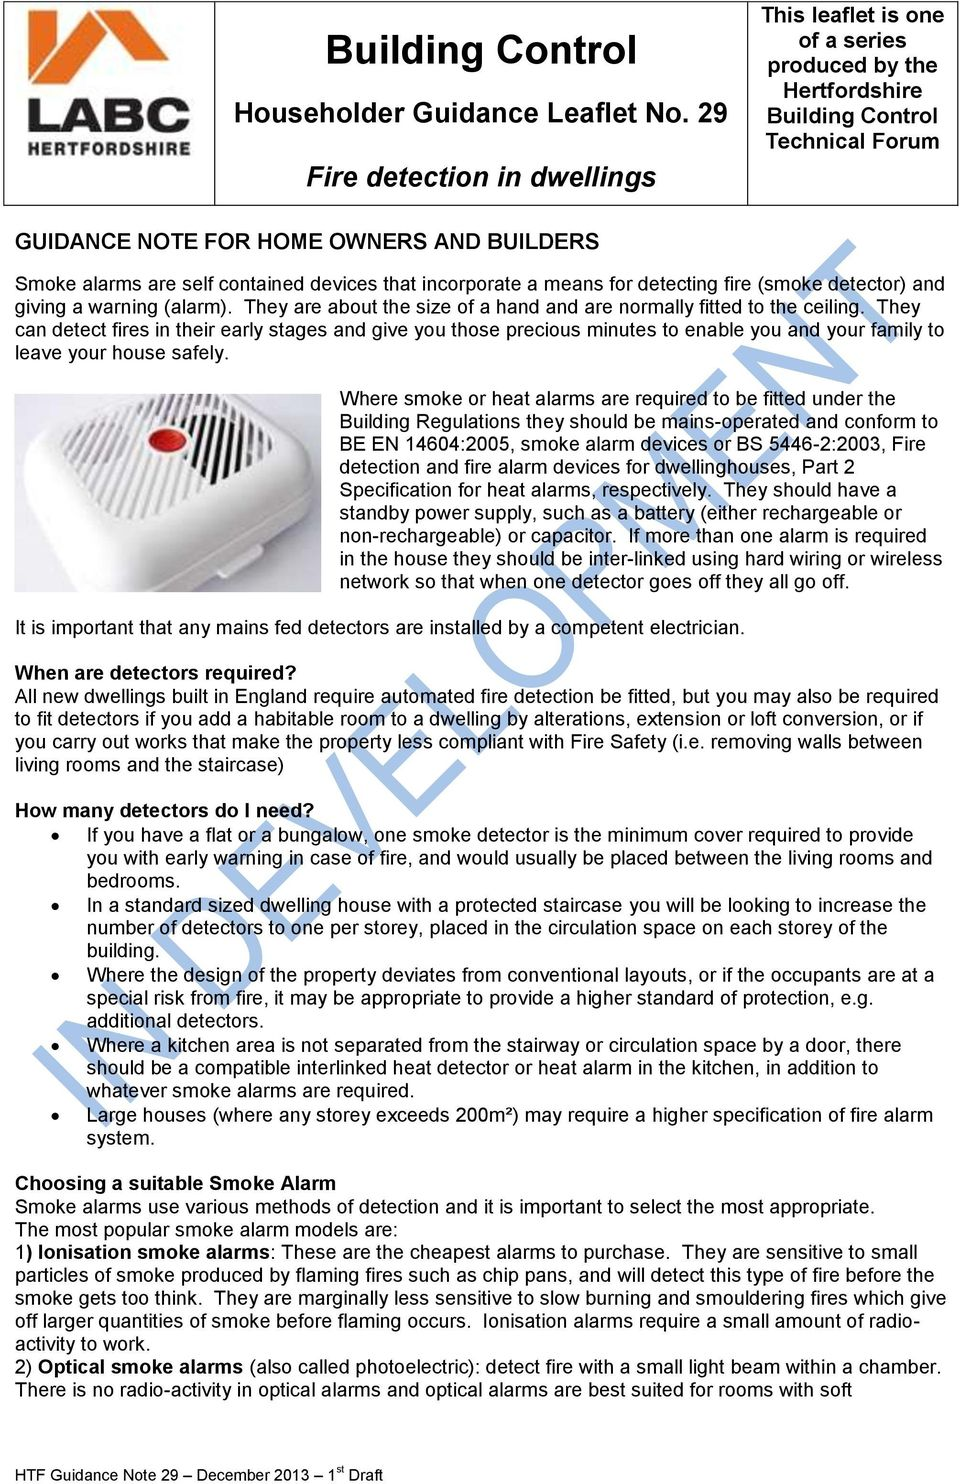 contained devices that incorporate a means for detecting fire (smoke detector) and giving a warning (alarm). They are about the size of a hand and are normally fitted to the ceiling.